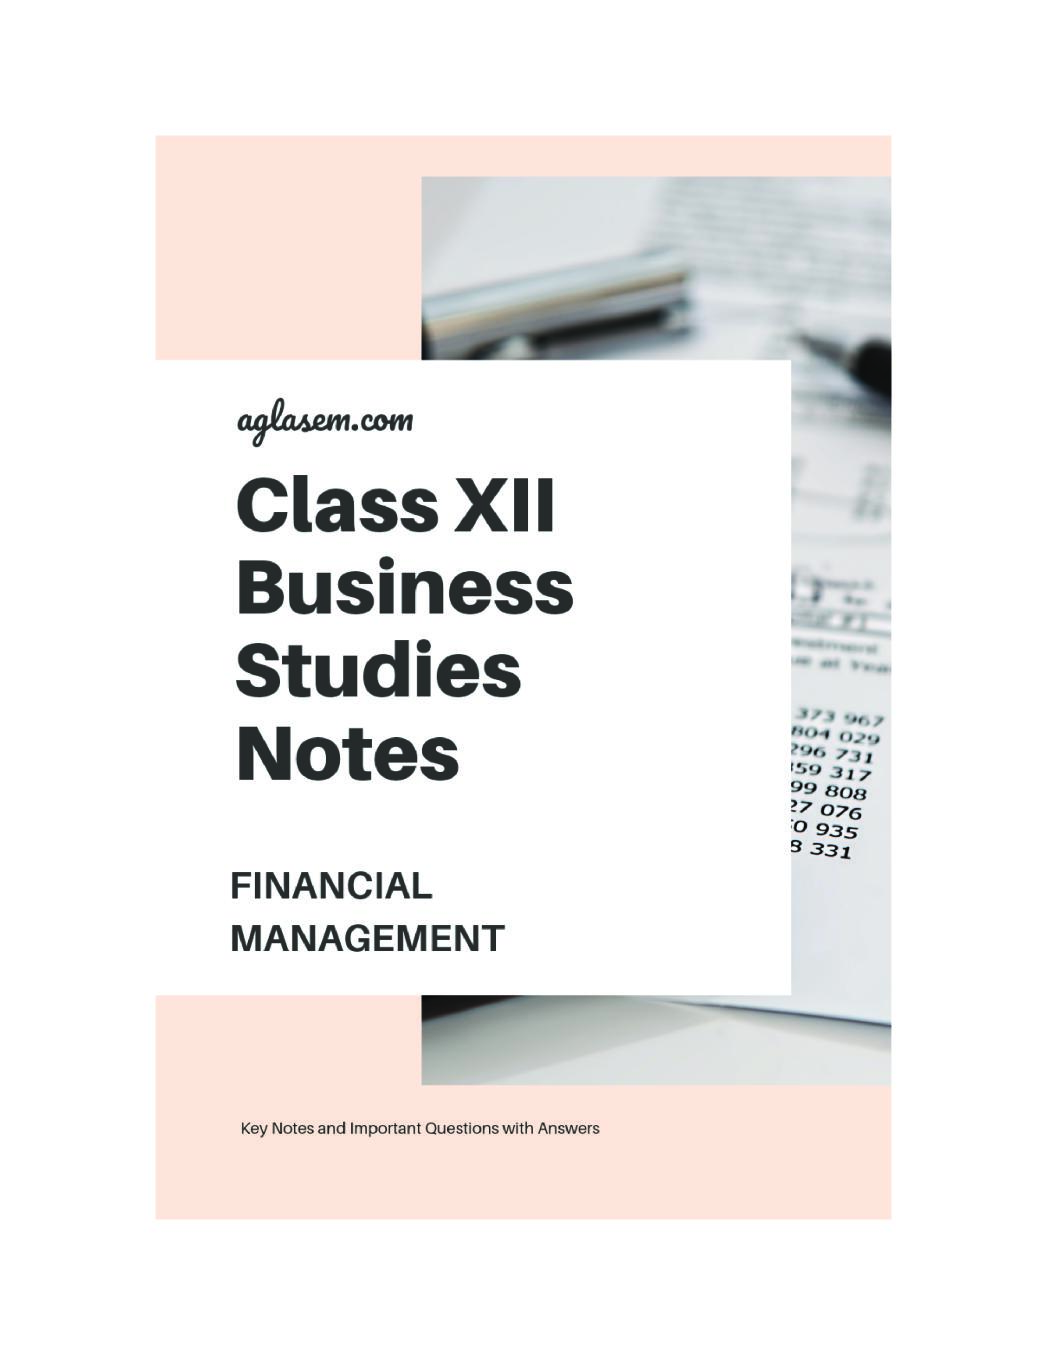 Class 12 Business Studies Notes for Financial Management